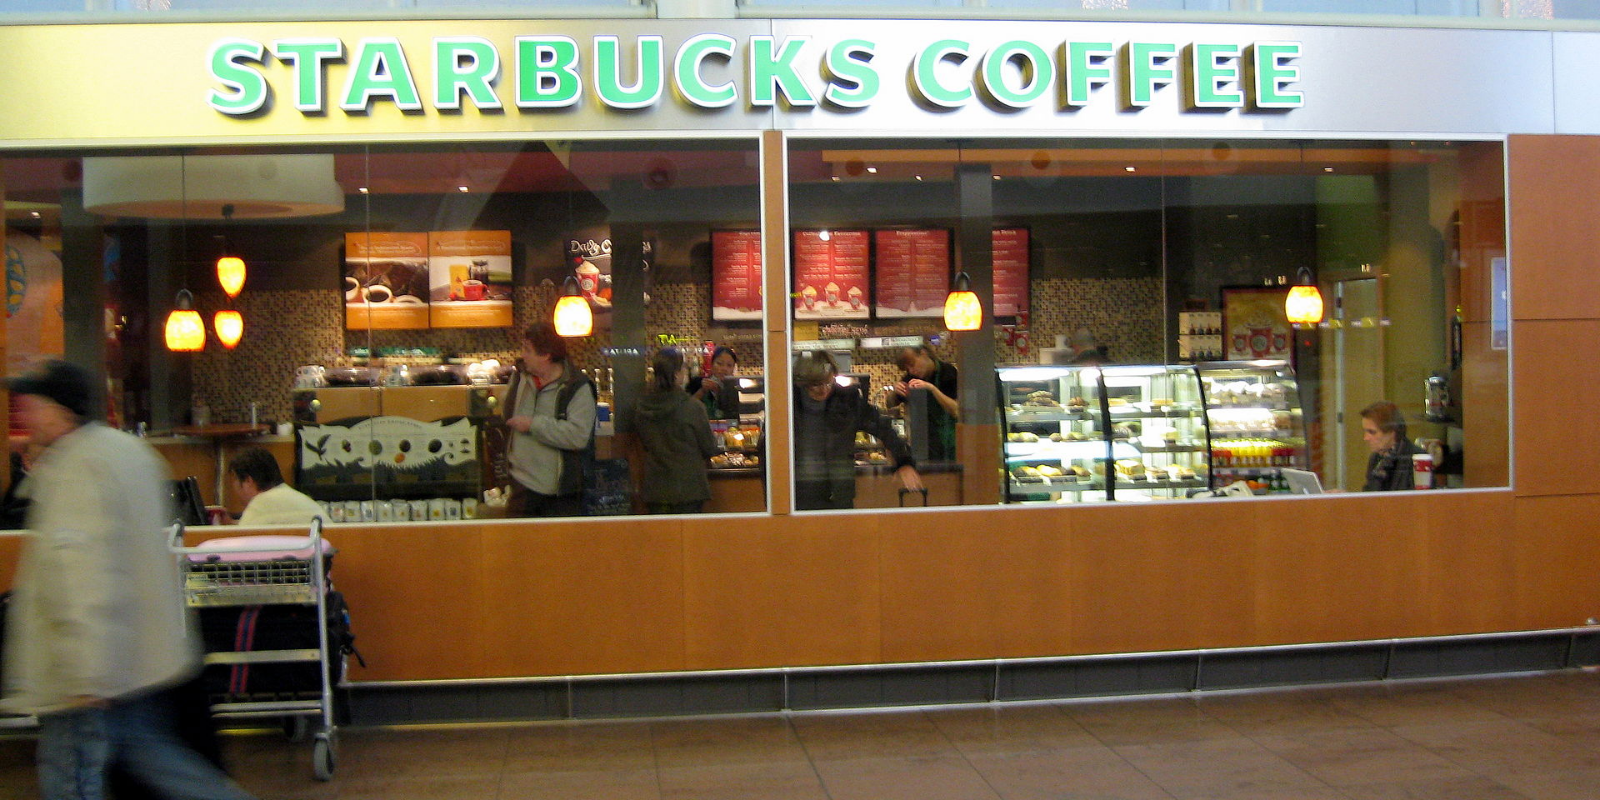 Starbucks is the latest chain to drop mask requirements for vaccinated people